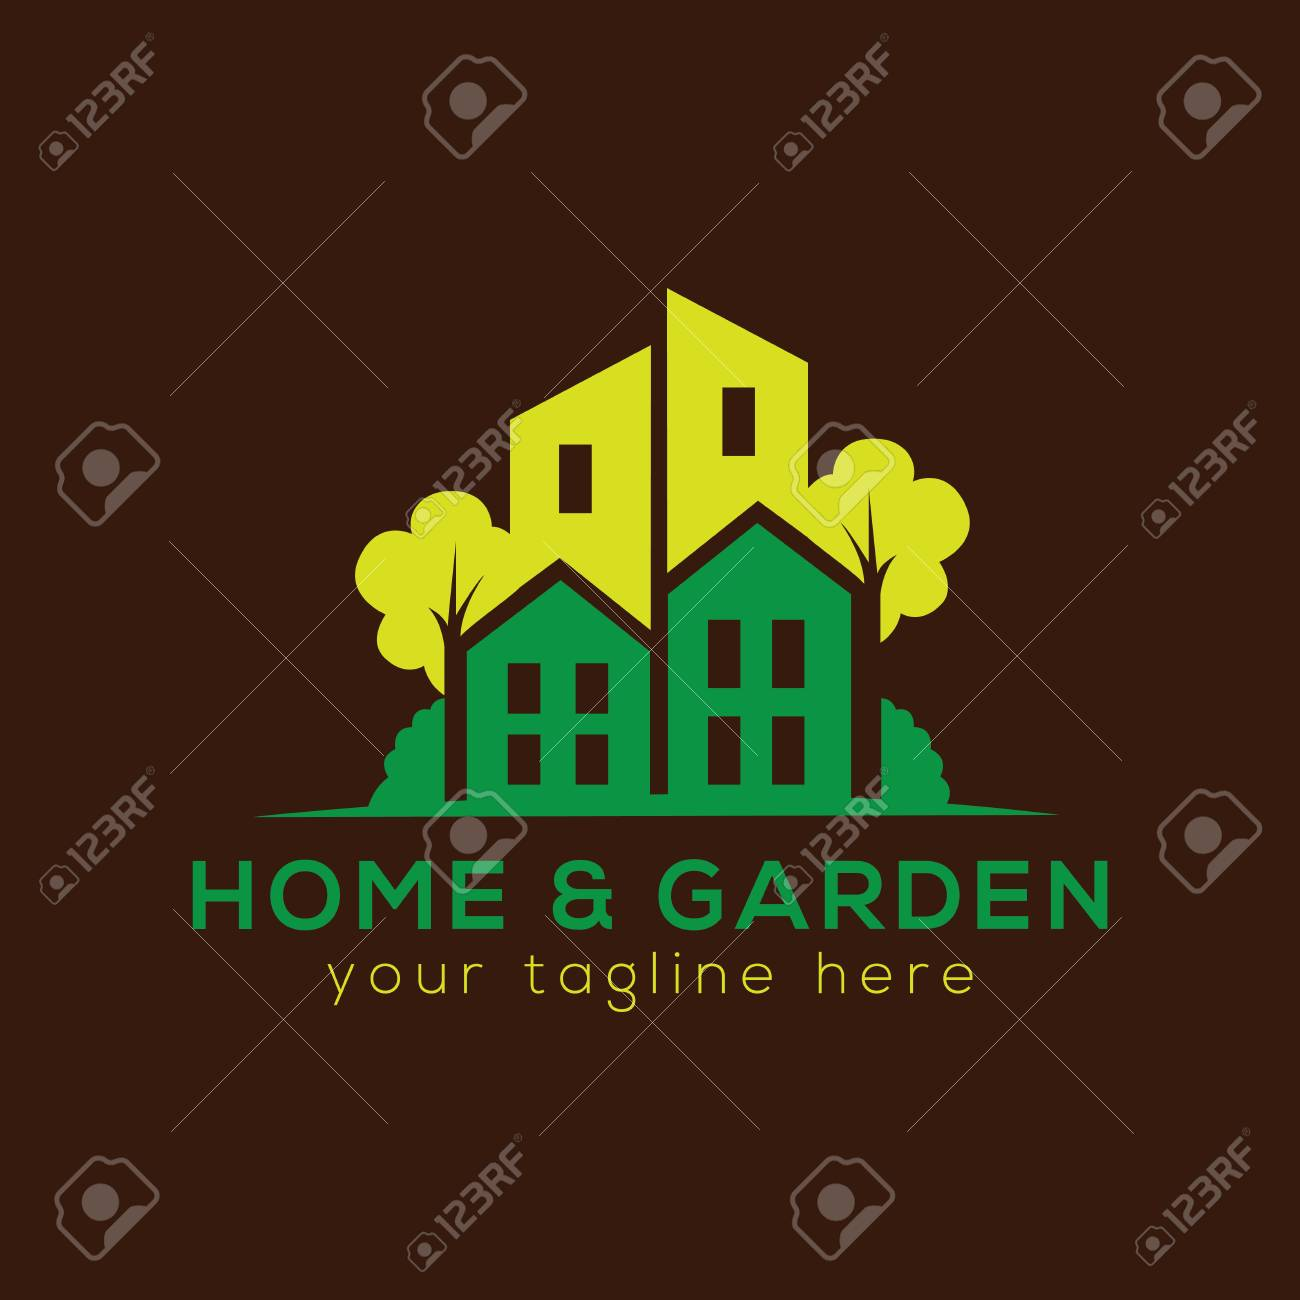 Home And Garden Logo Vector Stock Photo, Picture And Royalty Free ...